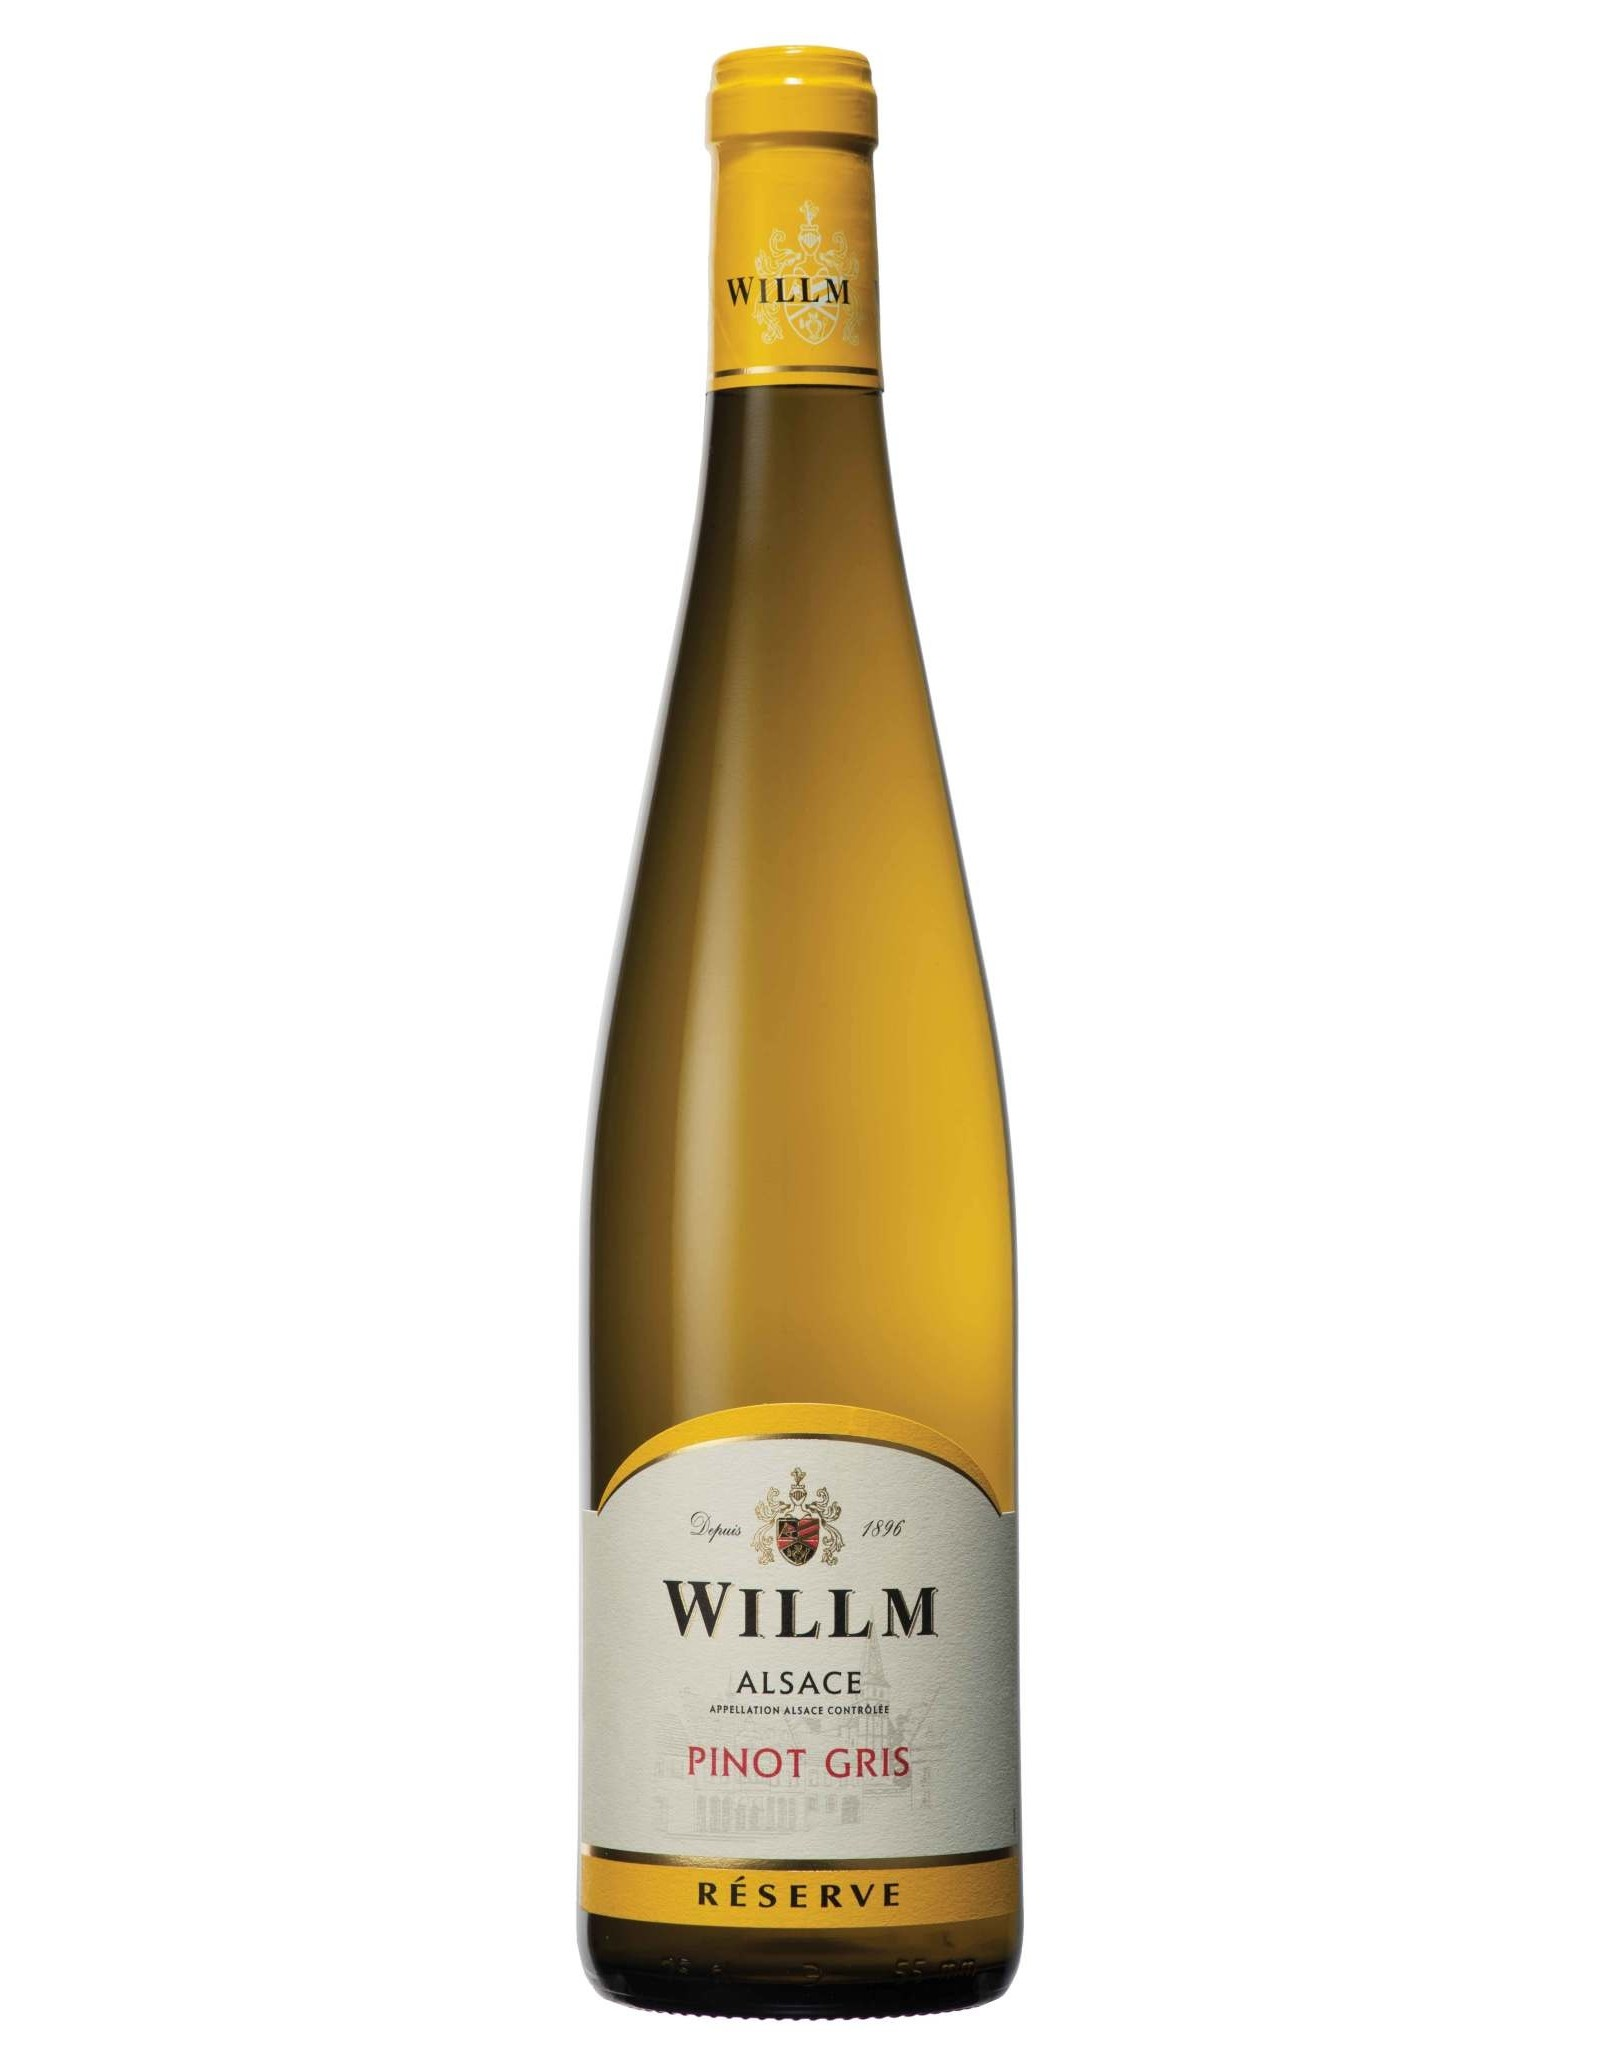 Willm Willm Pinot Gris (2017)